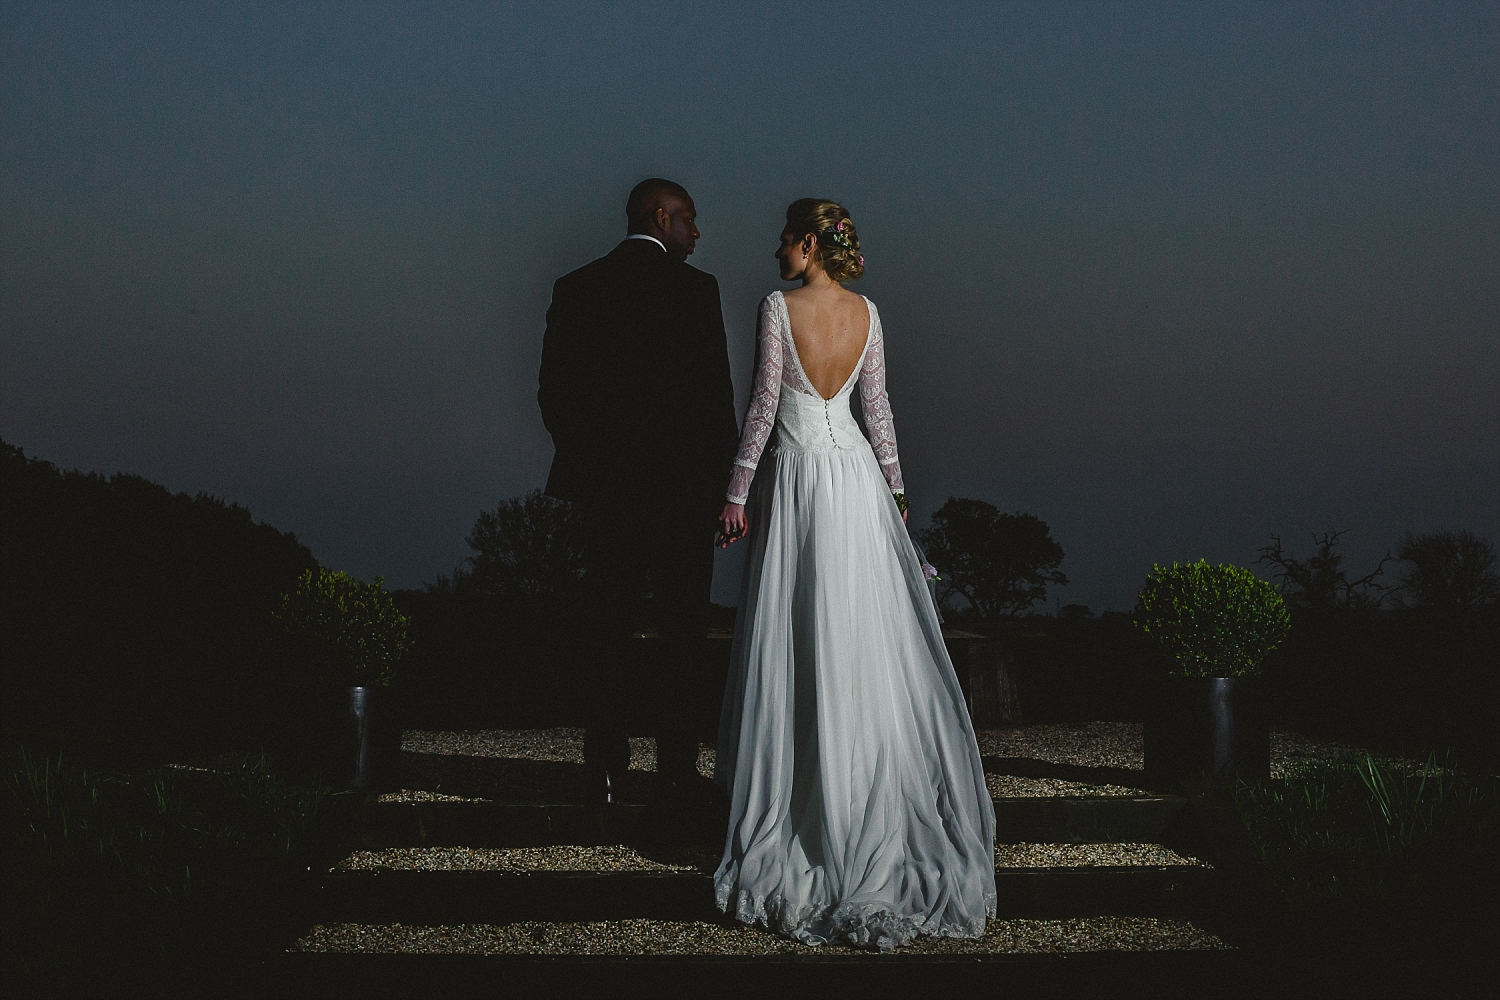 Gaynes Park Wedding Photographer - Evening Portrait